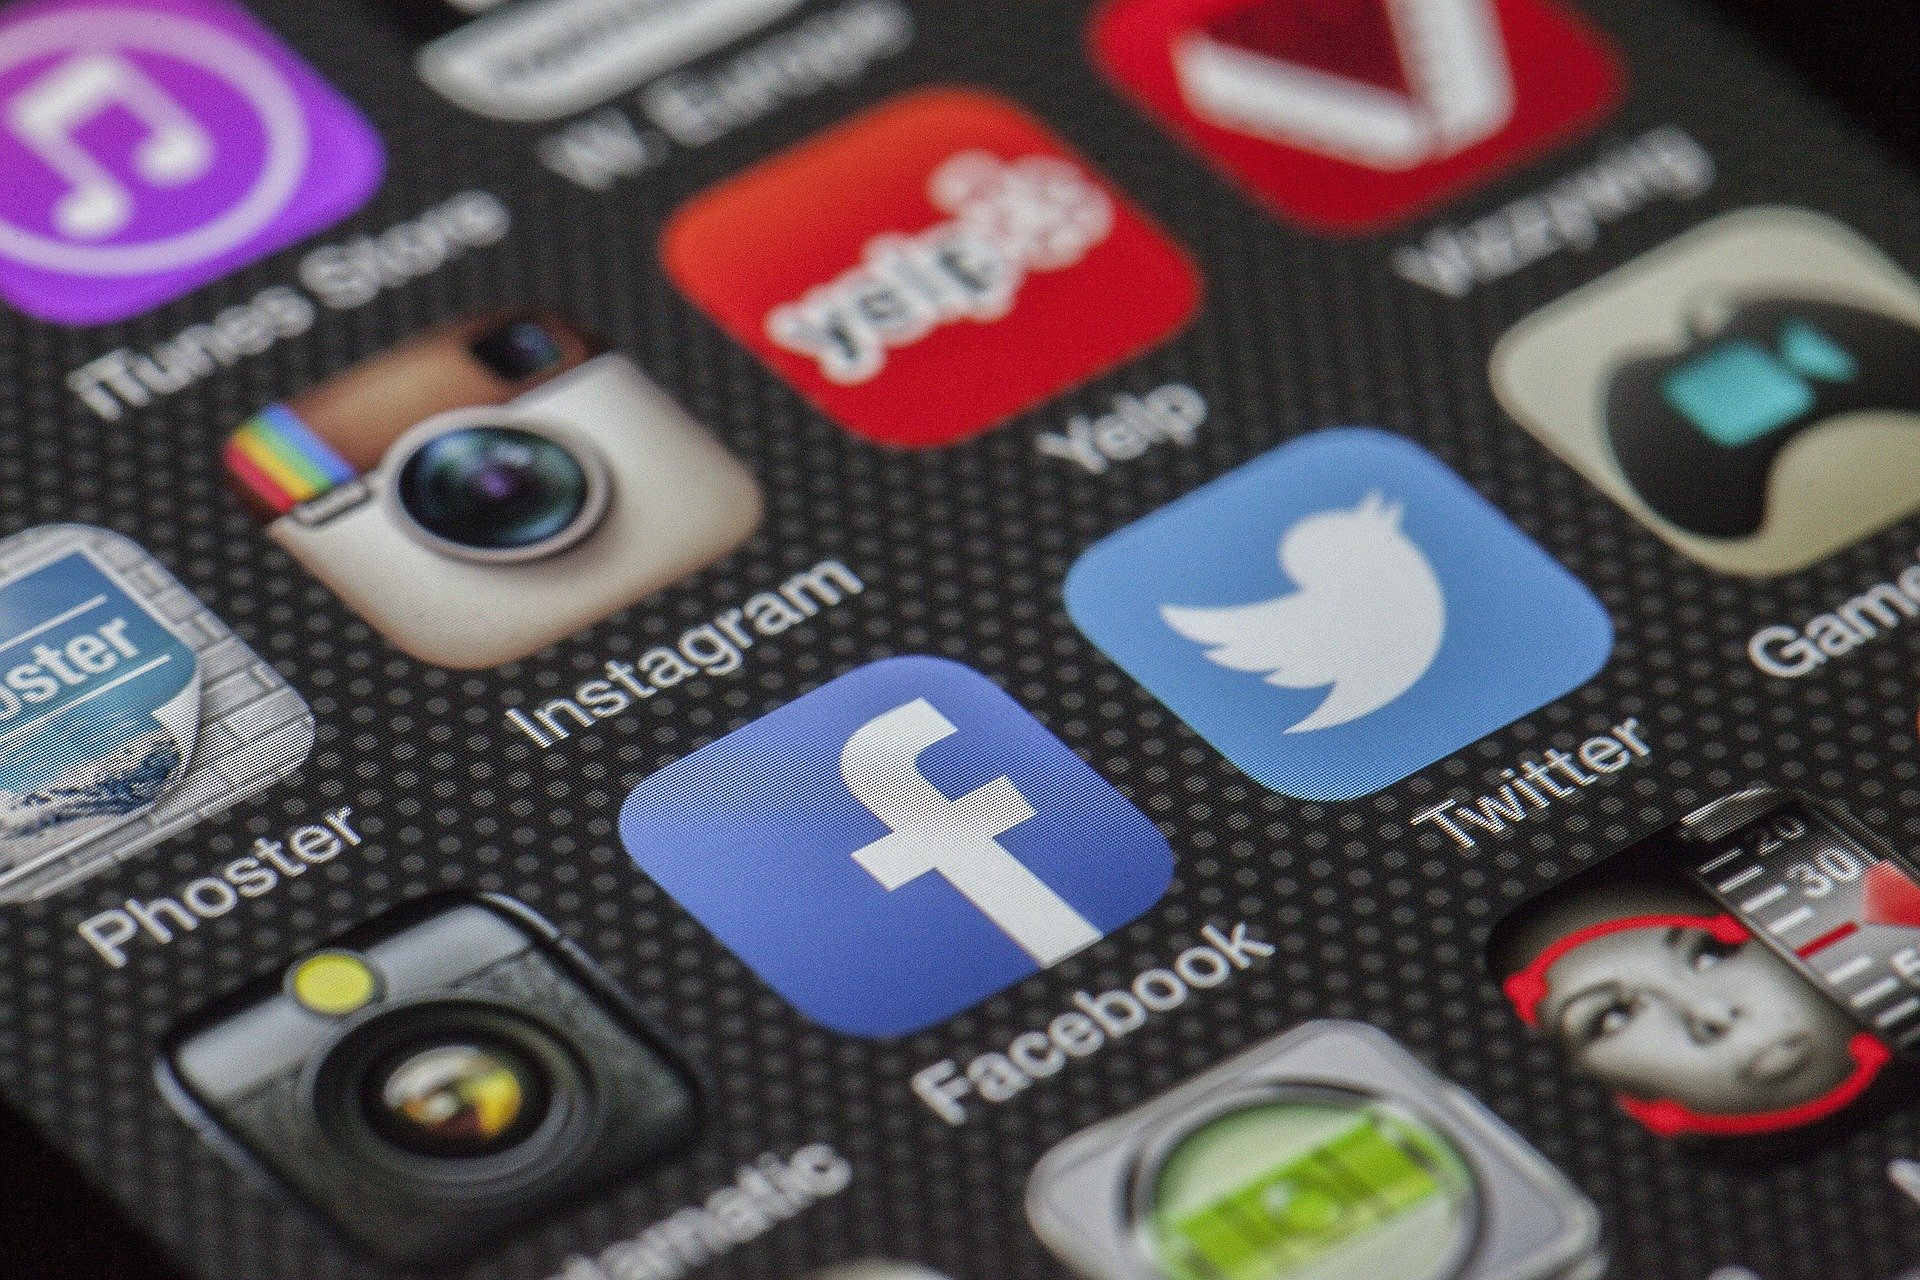 Apps on a Smartphone Screen, including Facebook, Instagram, and Twitter